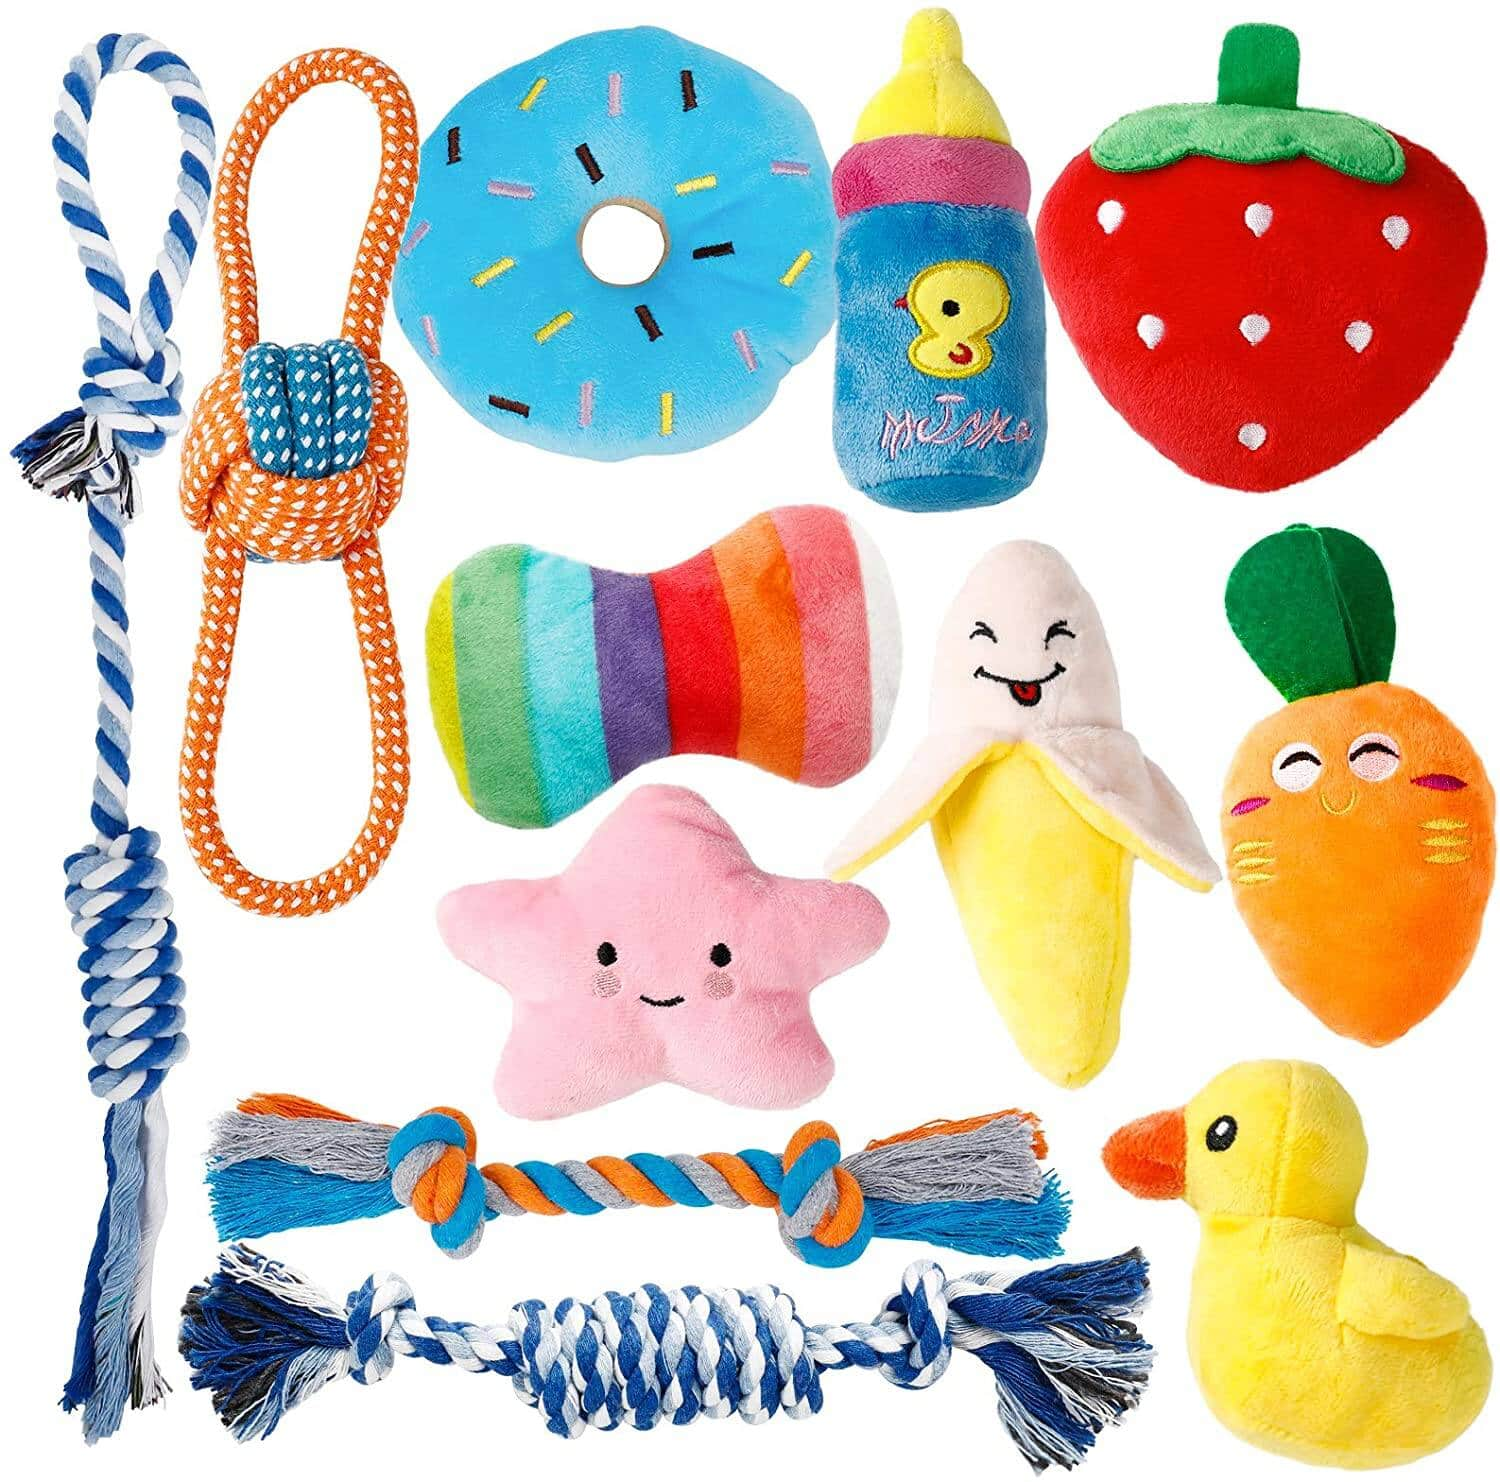 12 Pack Toozey Puppy Toys $8.99 + Shipping is free with Prime or on orders $25+.